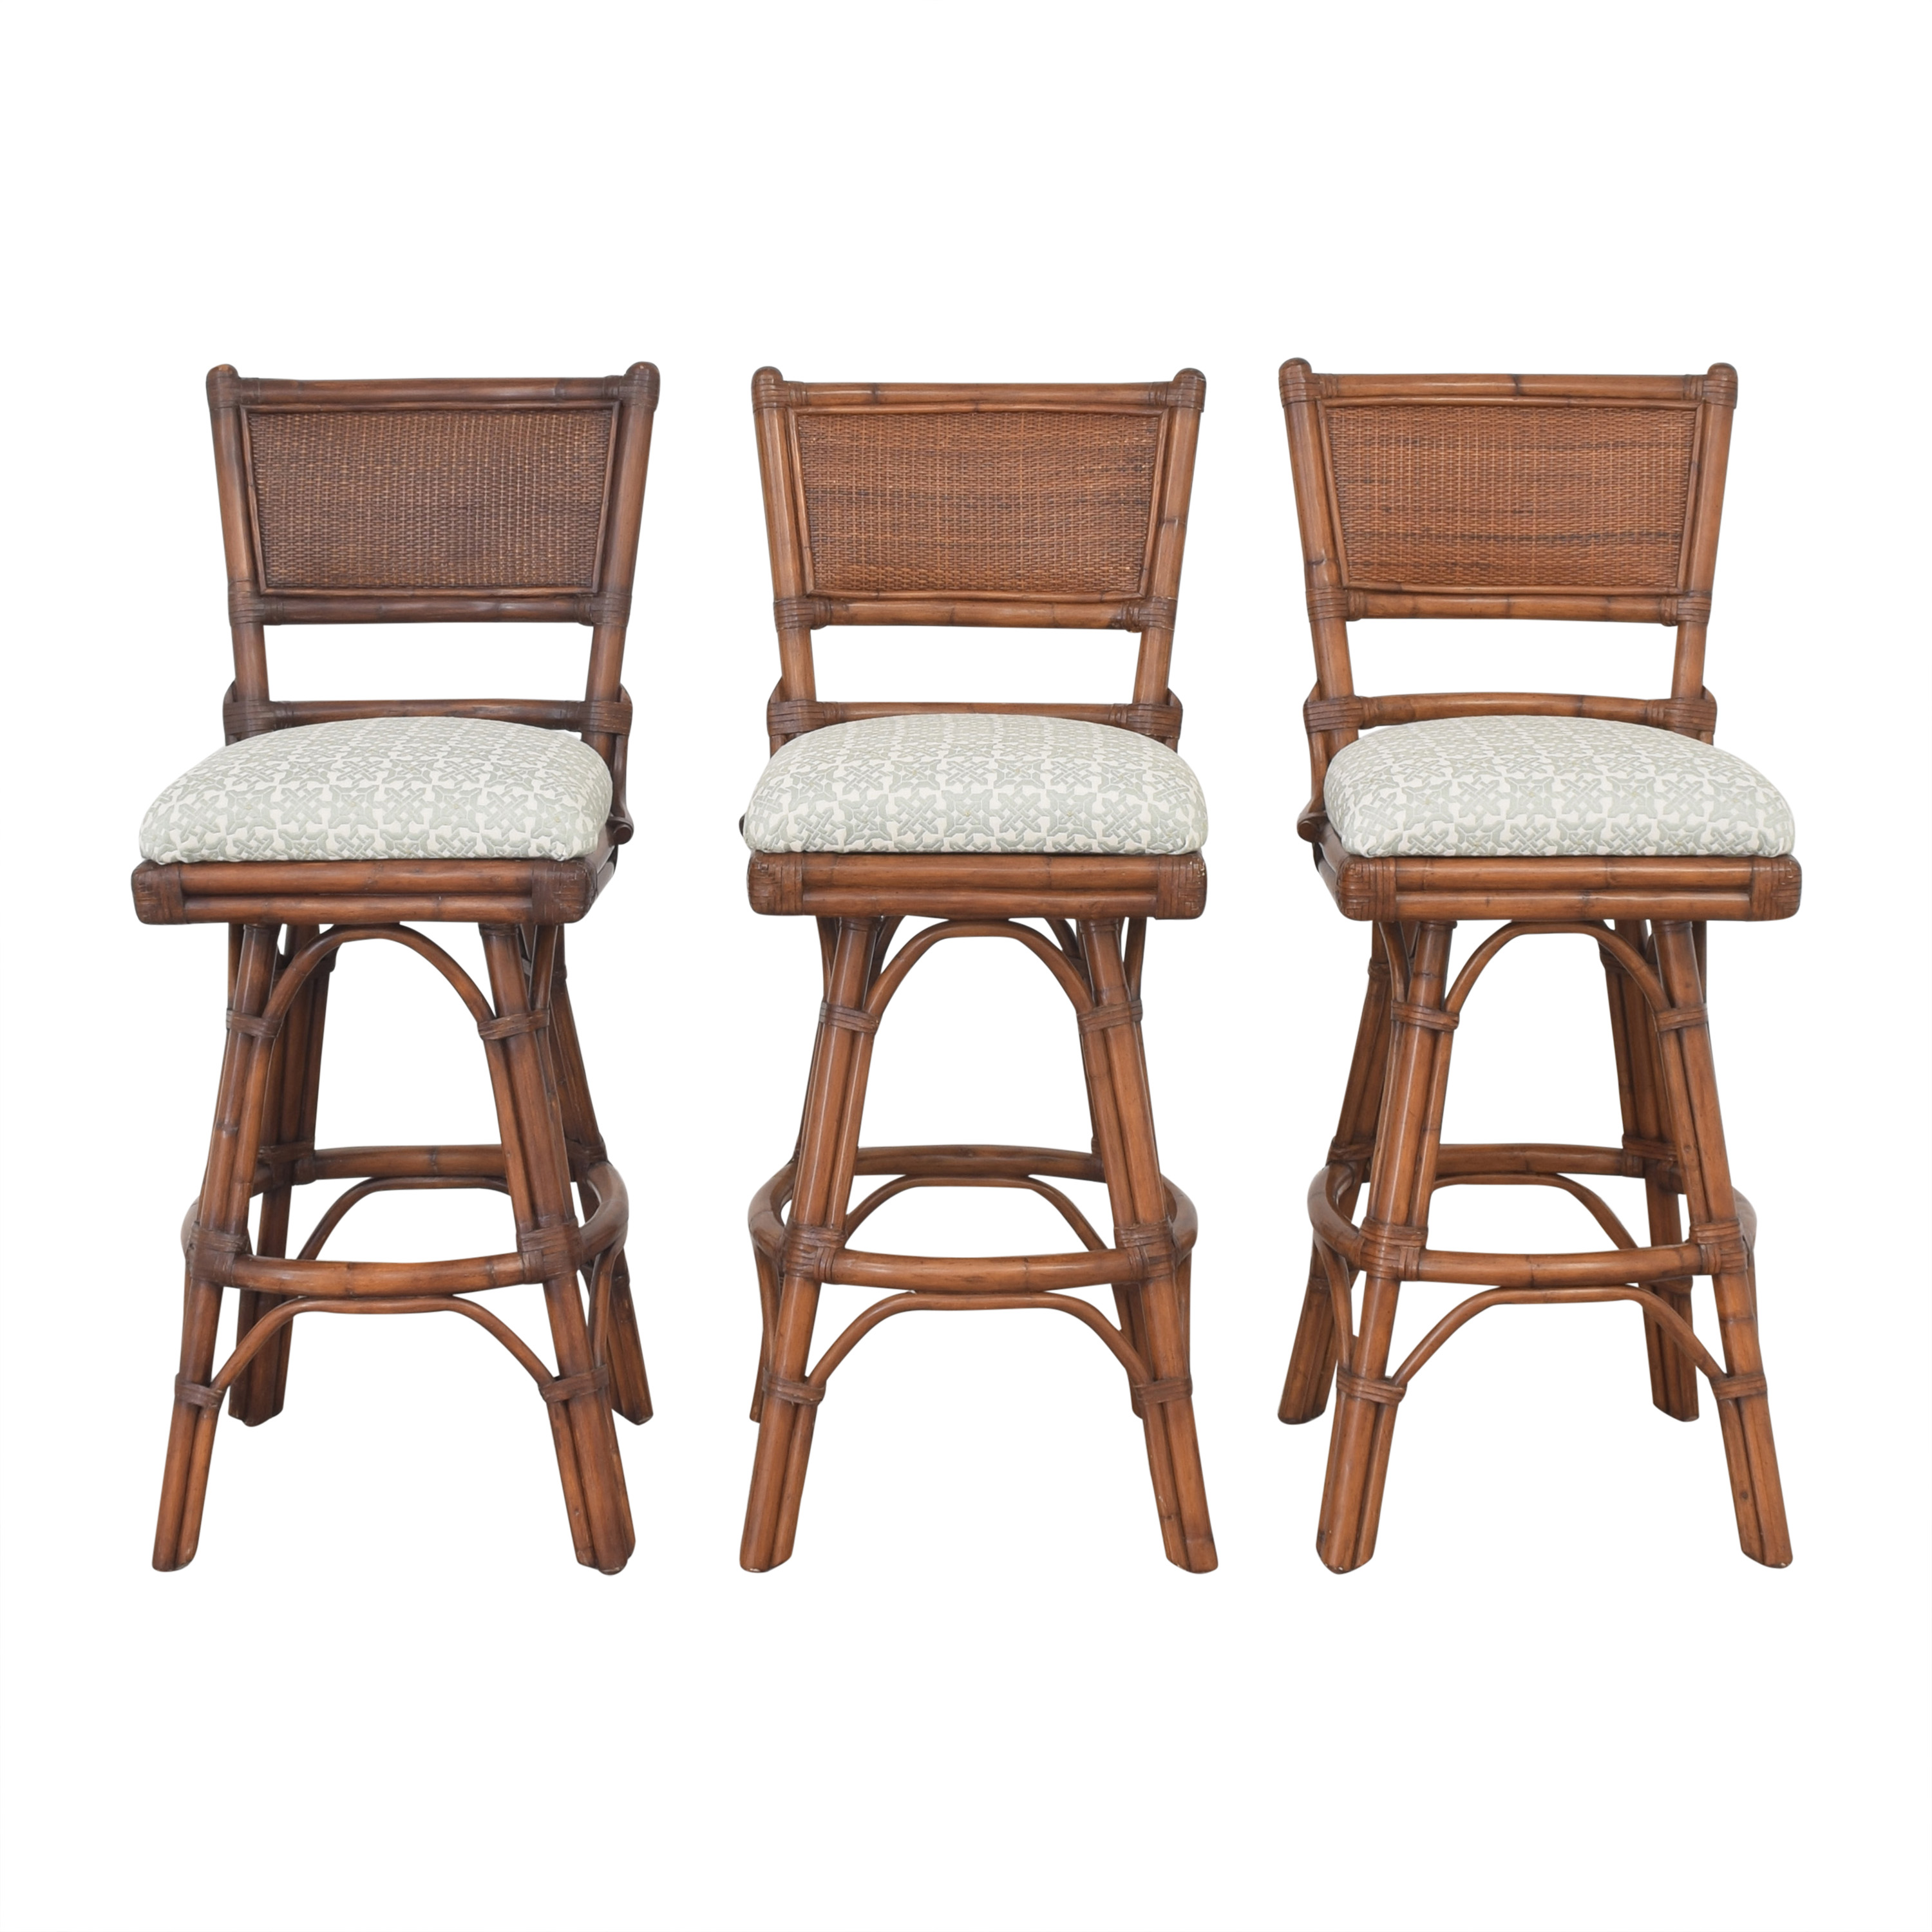 buy  Bamboo Style Counter Stools online